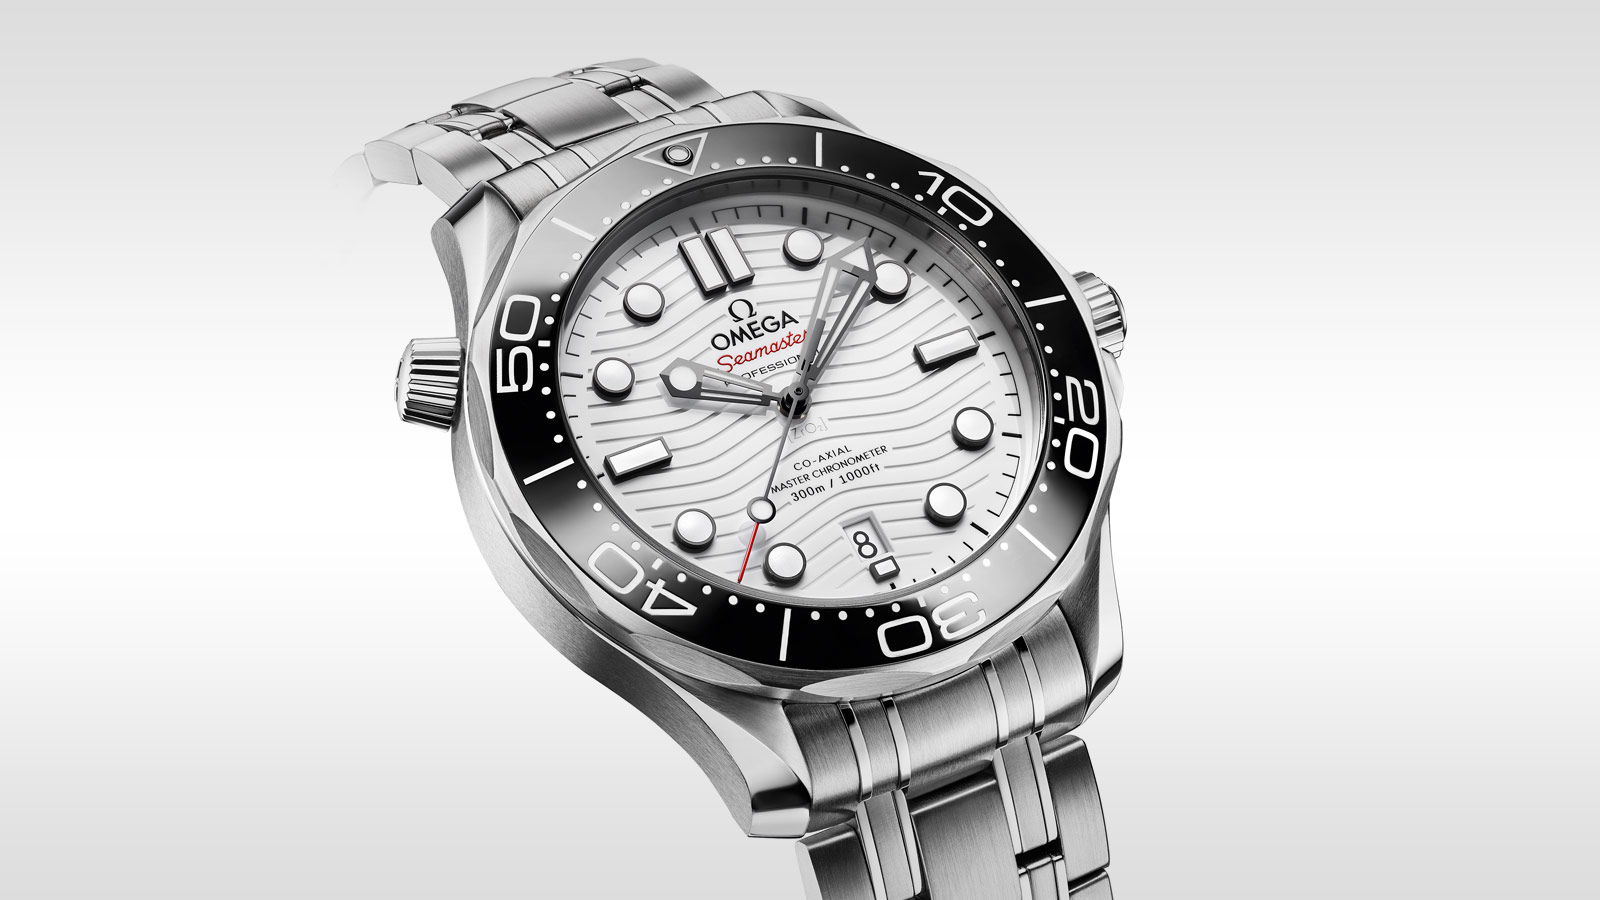 Seamaster Diver 300 M Diver 300M Omega Co‑Axial Master Chronometer 42 mm - 210.30.42.20.04.001 - View 2